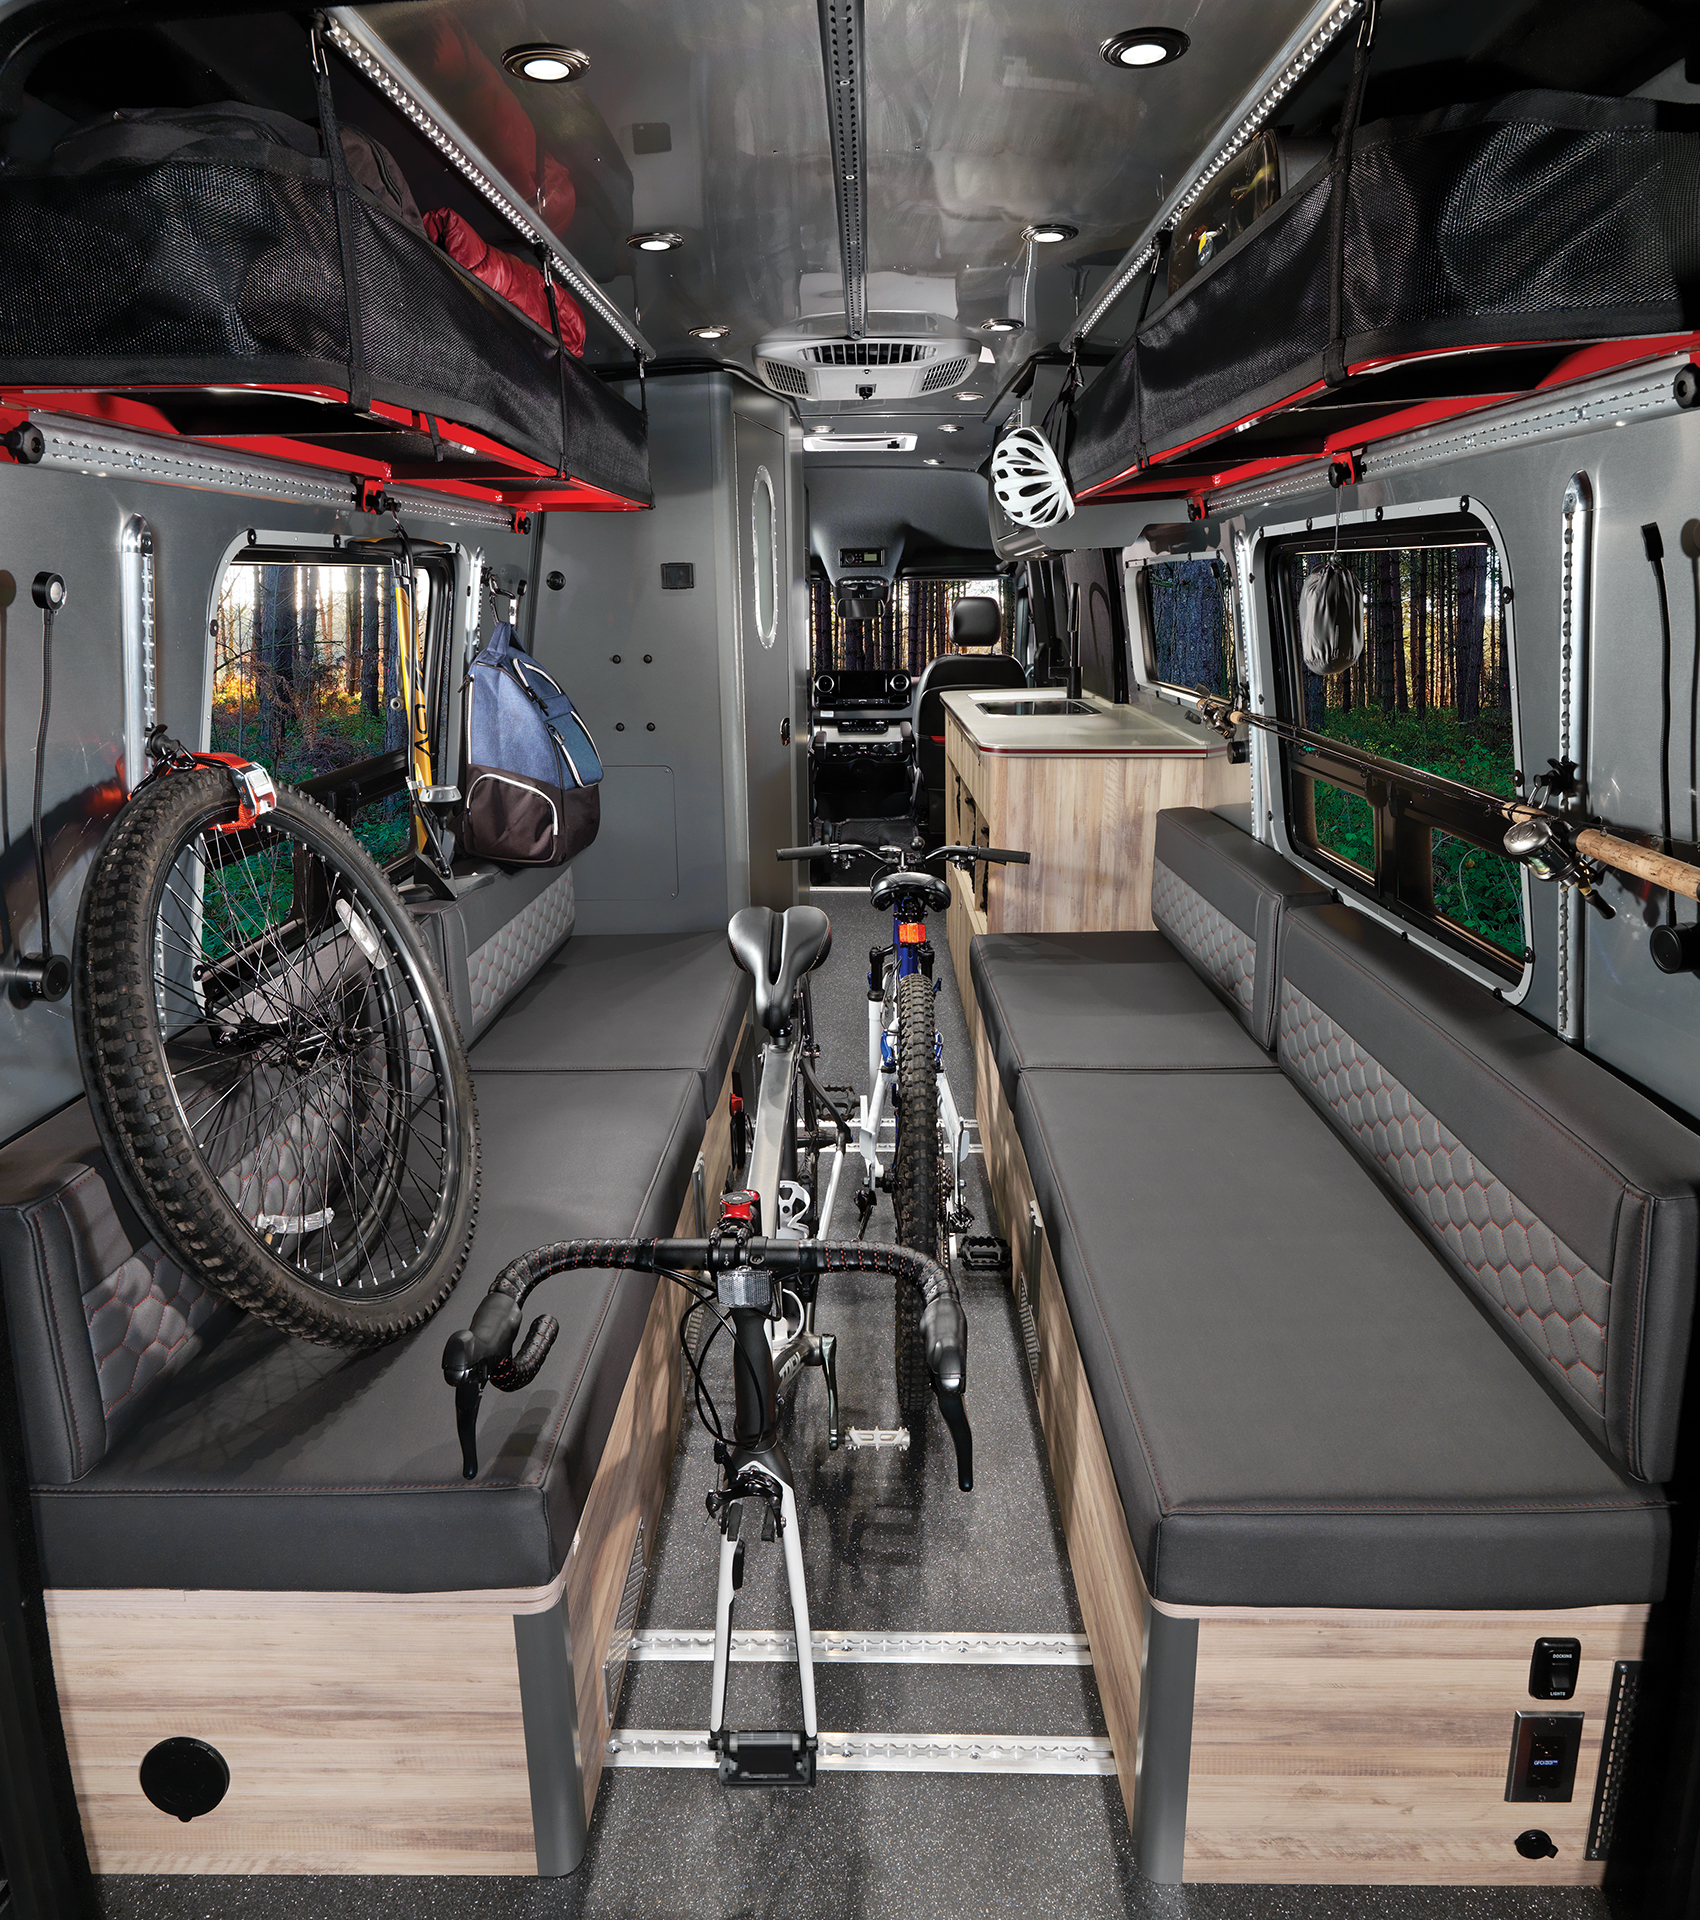 Airstream-Interstate-24X-Interior-with-Gear-Mounted-Bikes